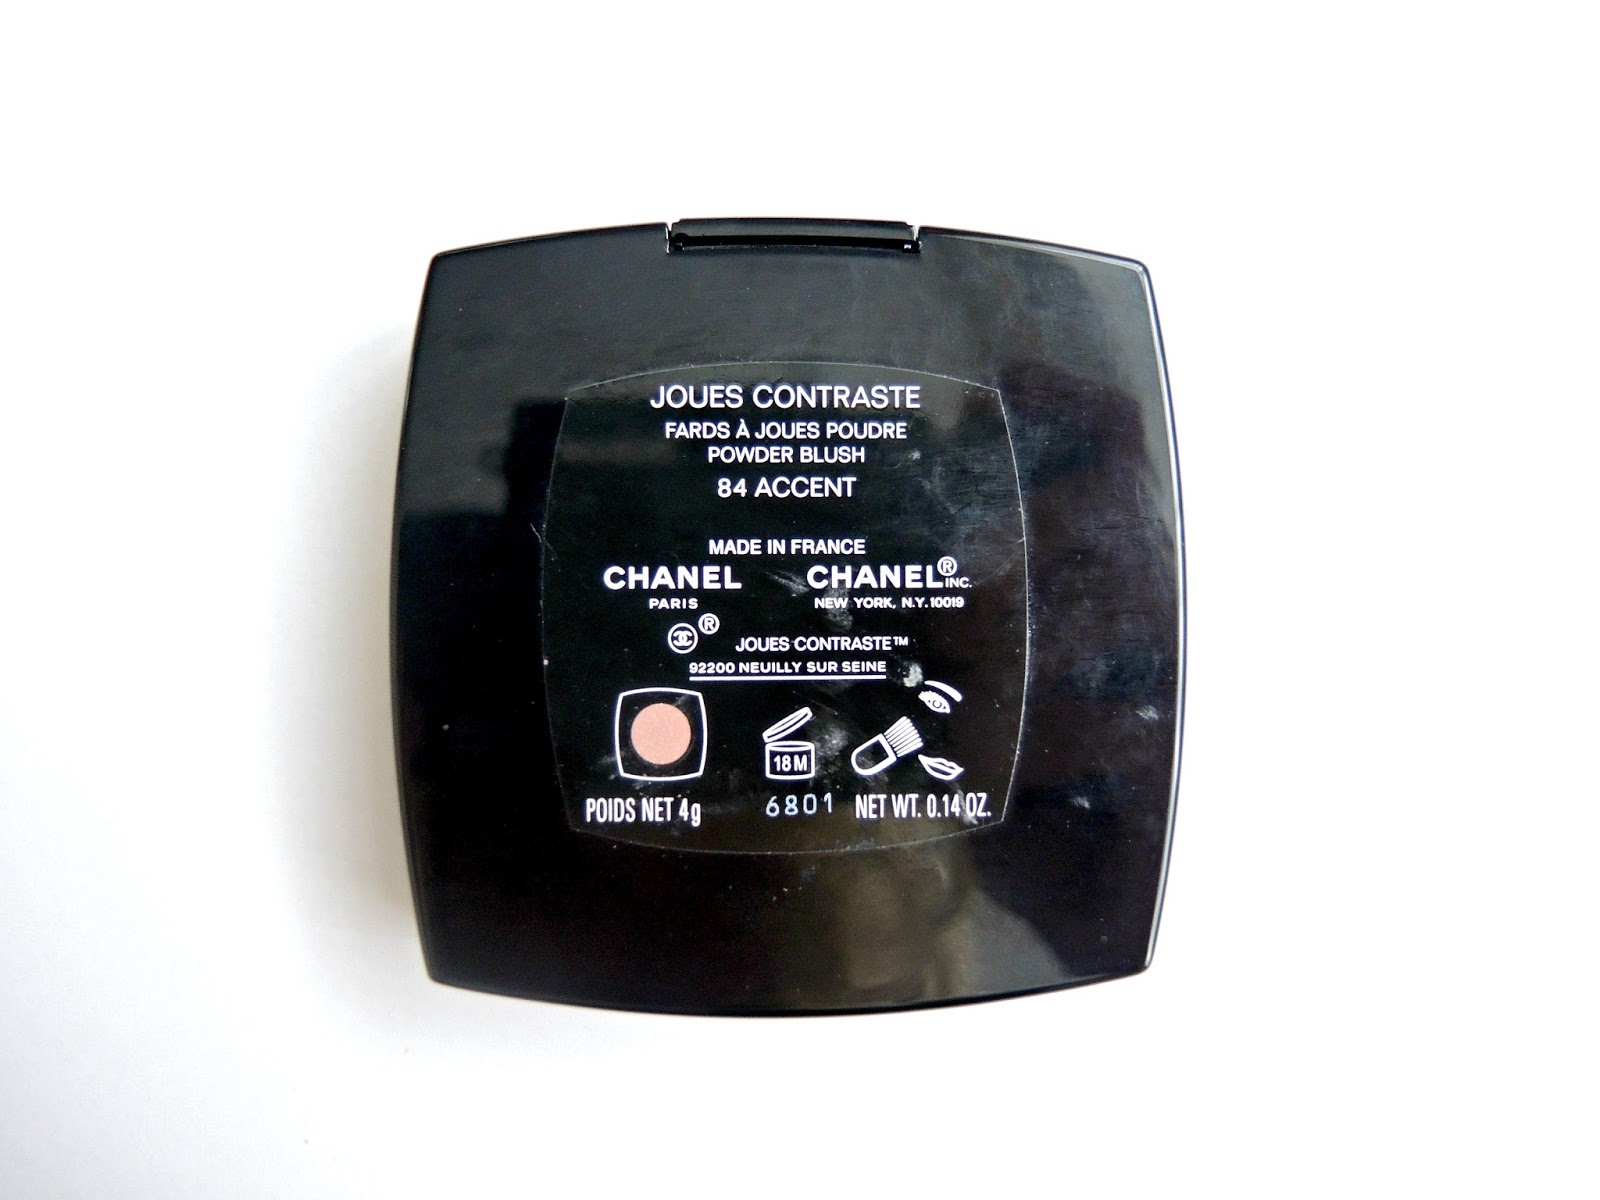 Chanel Joues Contraste Powder Blush Accent 84